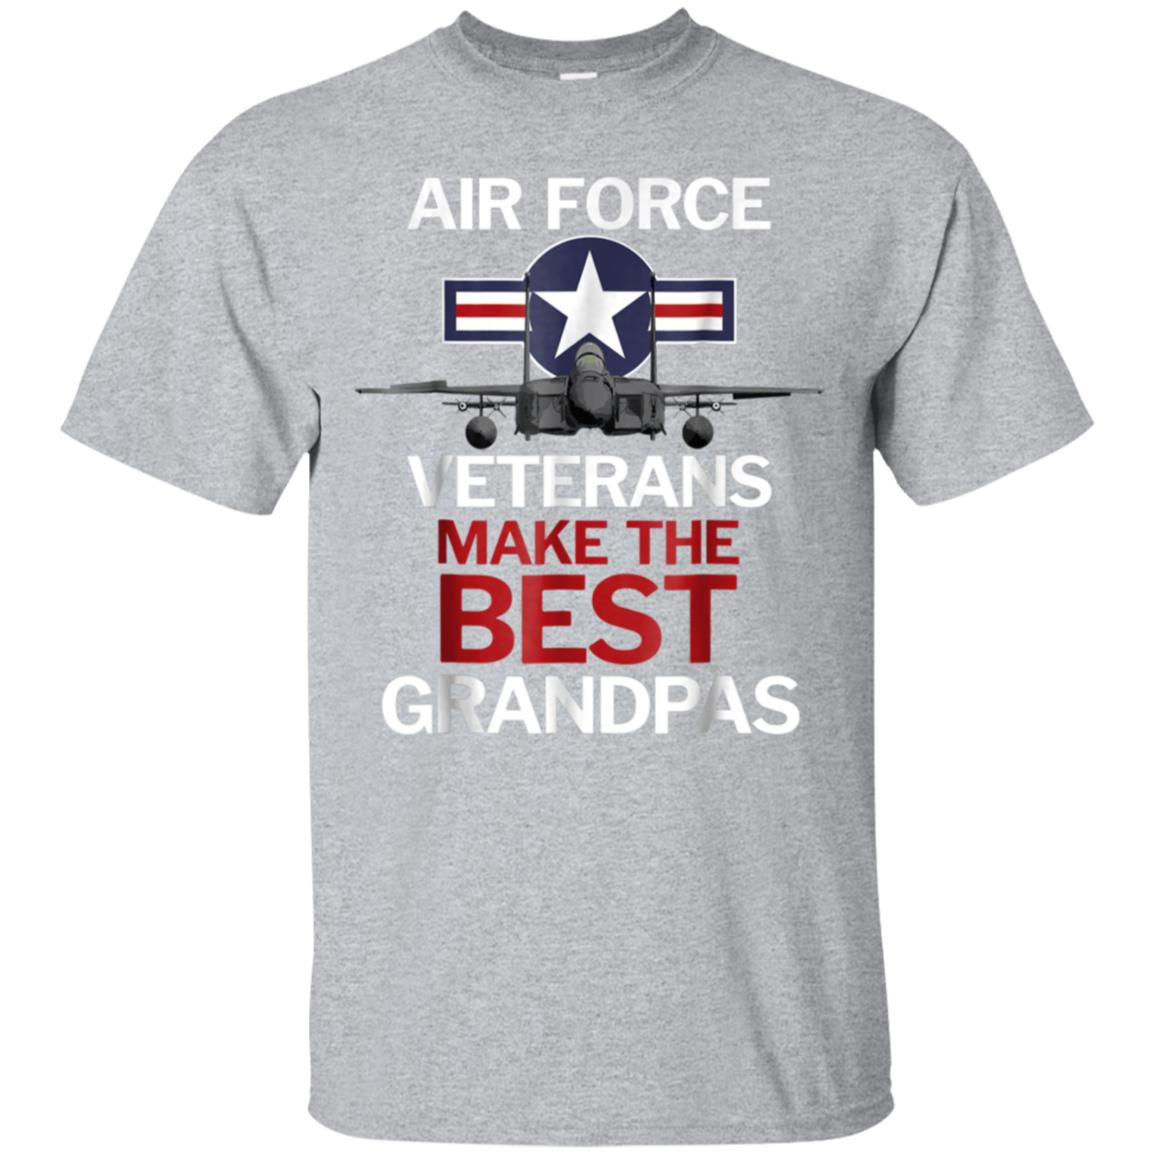 Air Force Veterans Make the Best Grandpas T-Shirt 99promocode